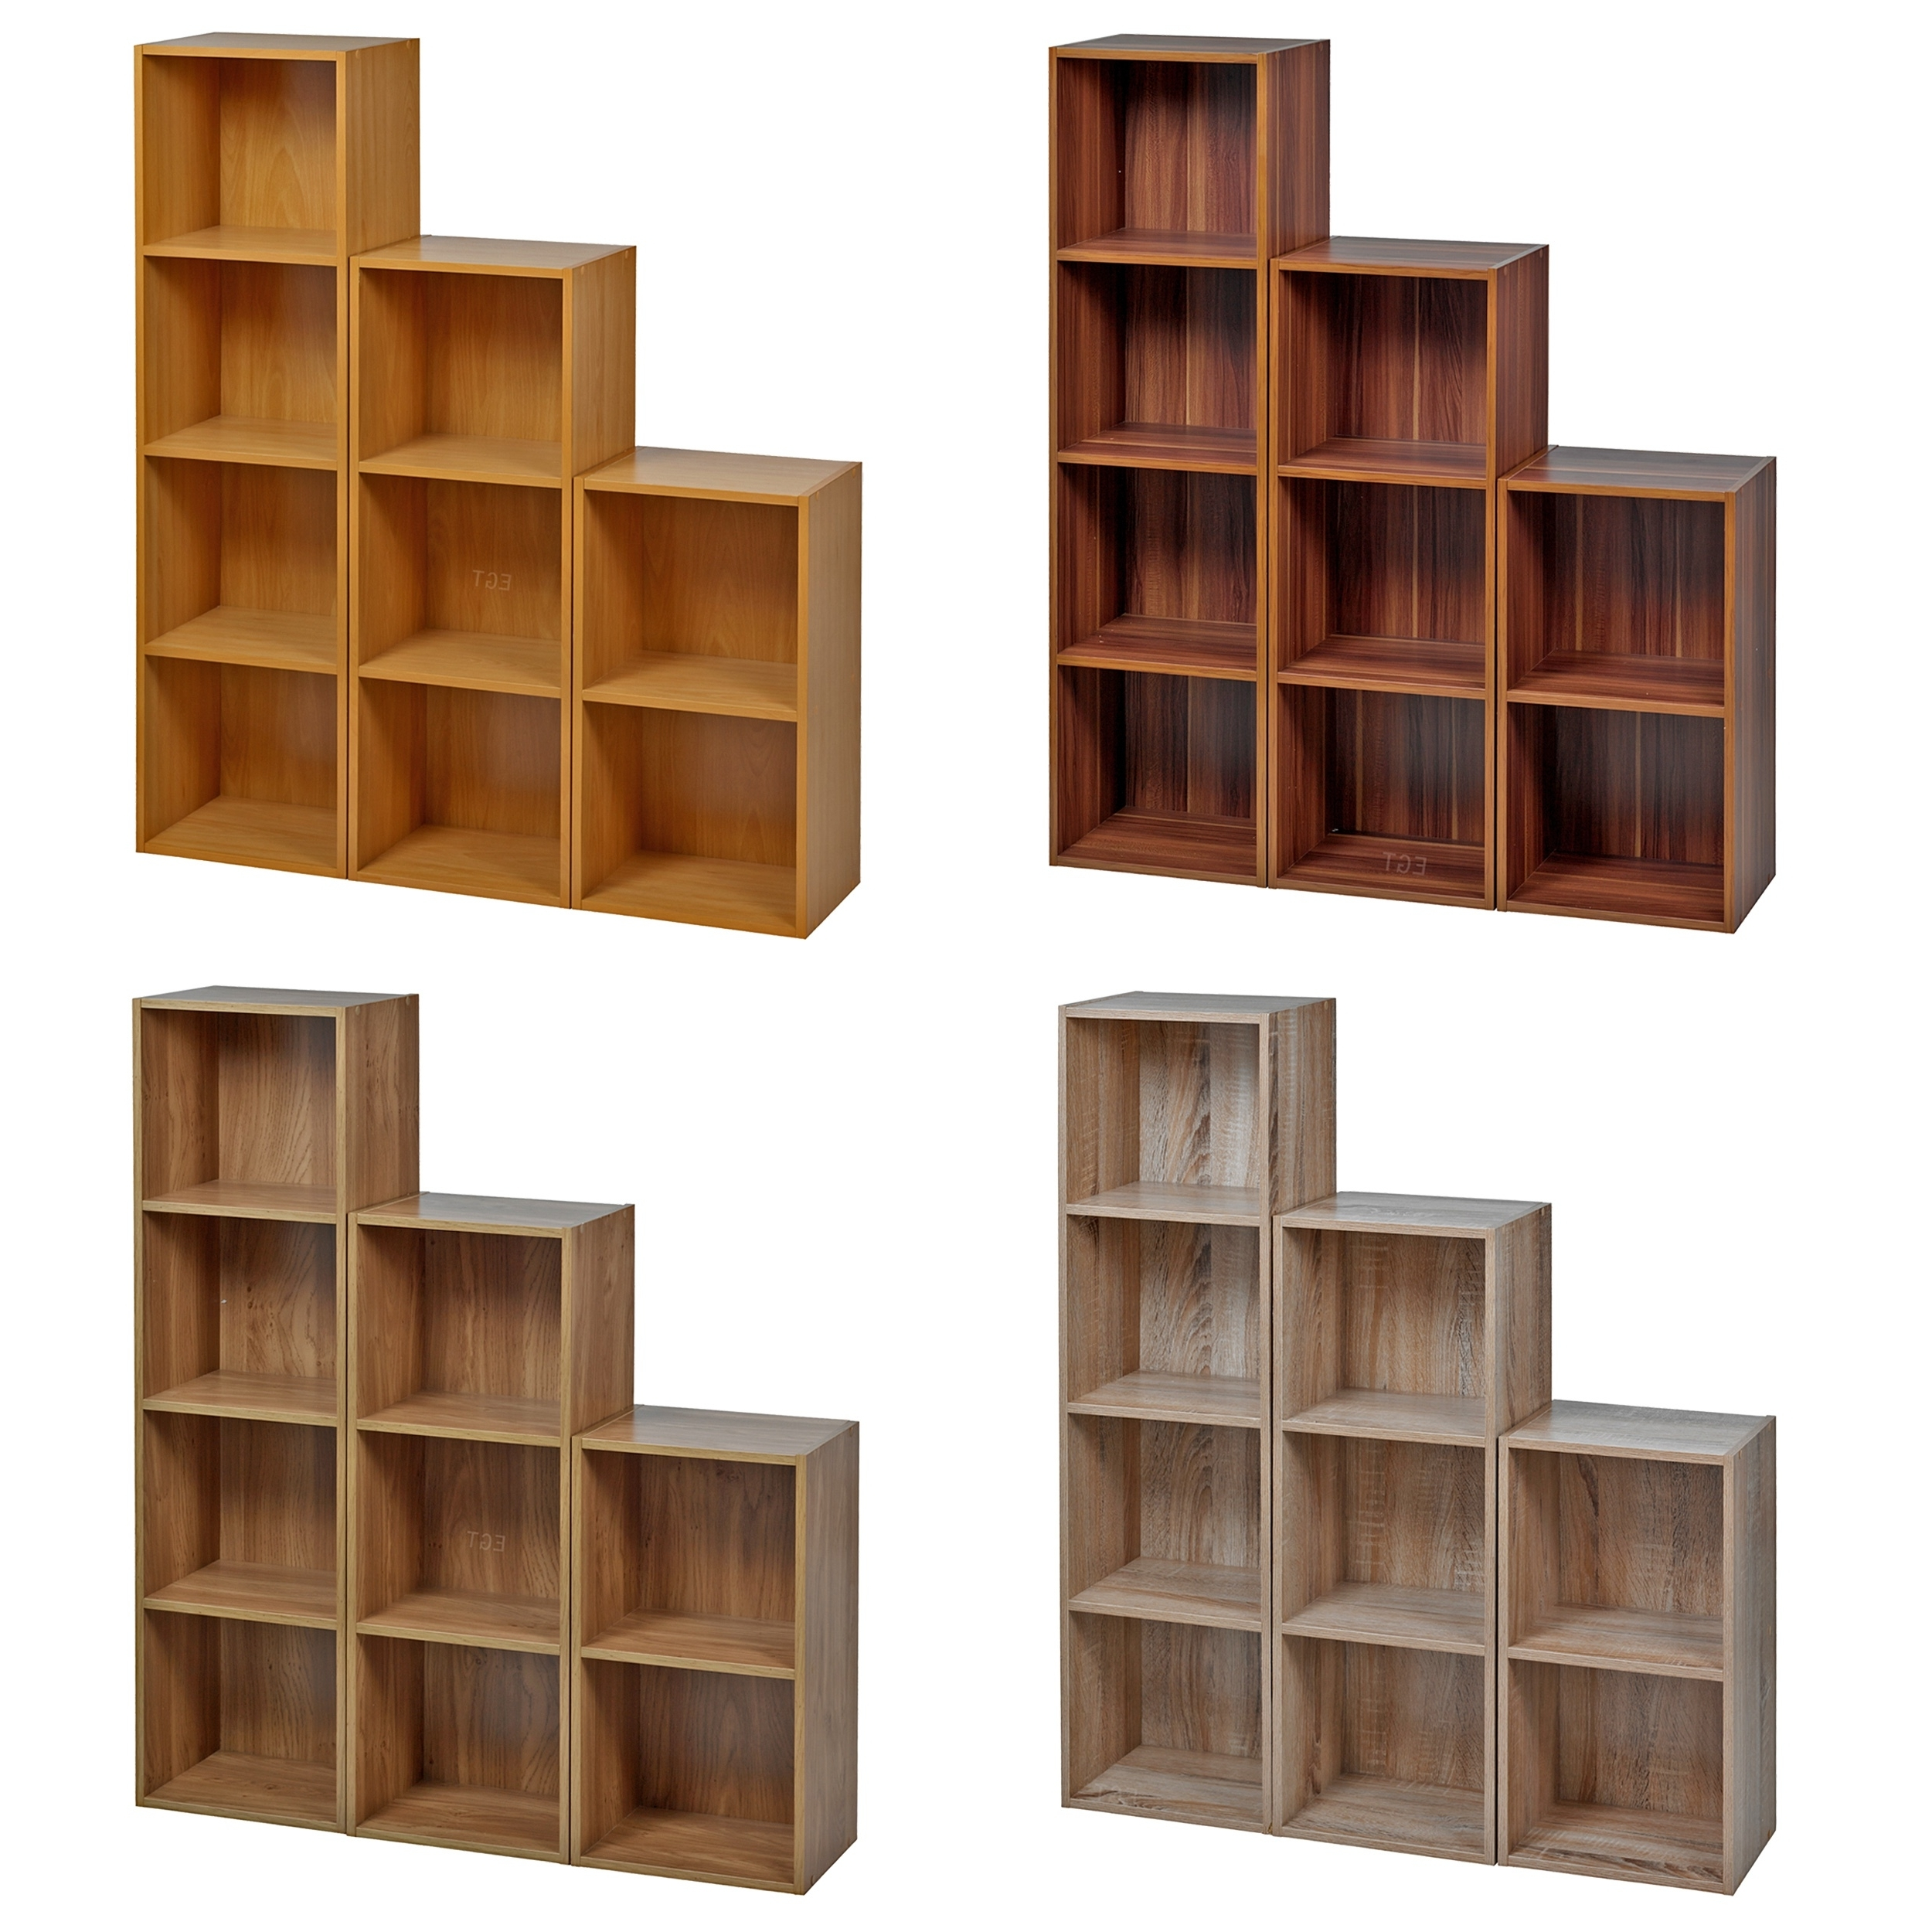 1, 2, 3, 4 Tier Wooden Bookcase Shelving Display Storage Wood Pertaining To Most Up To Date Wooden Shelving Units (View 3 of 15)